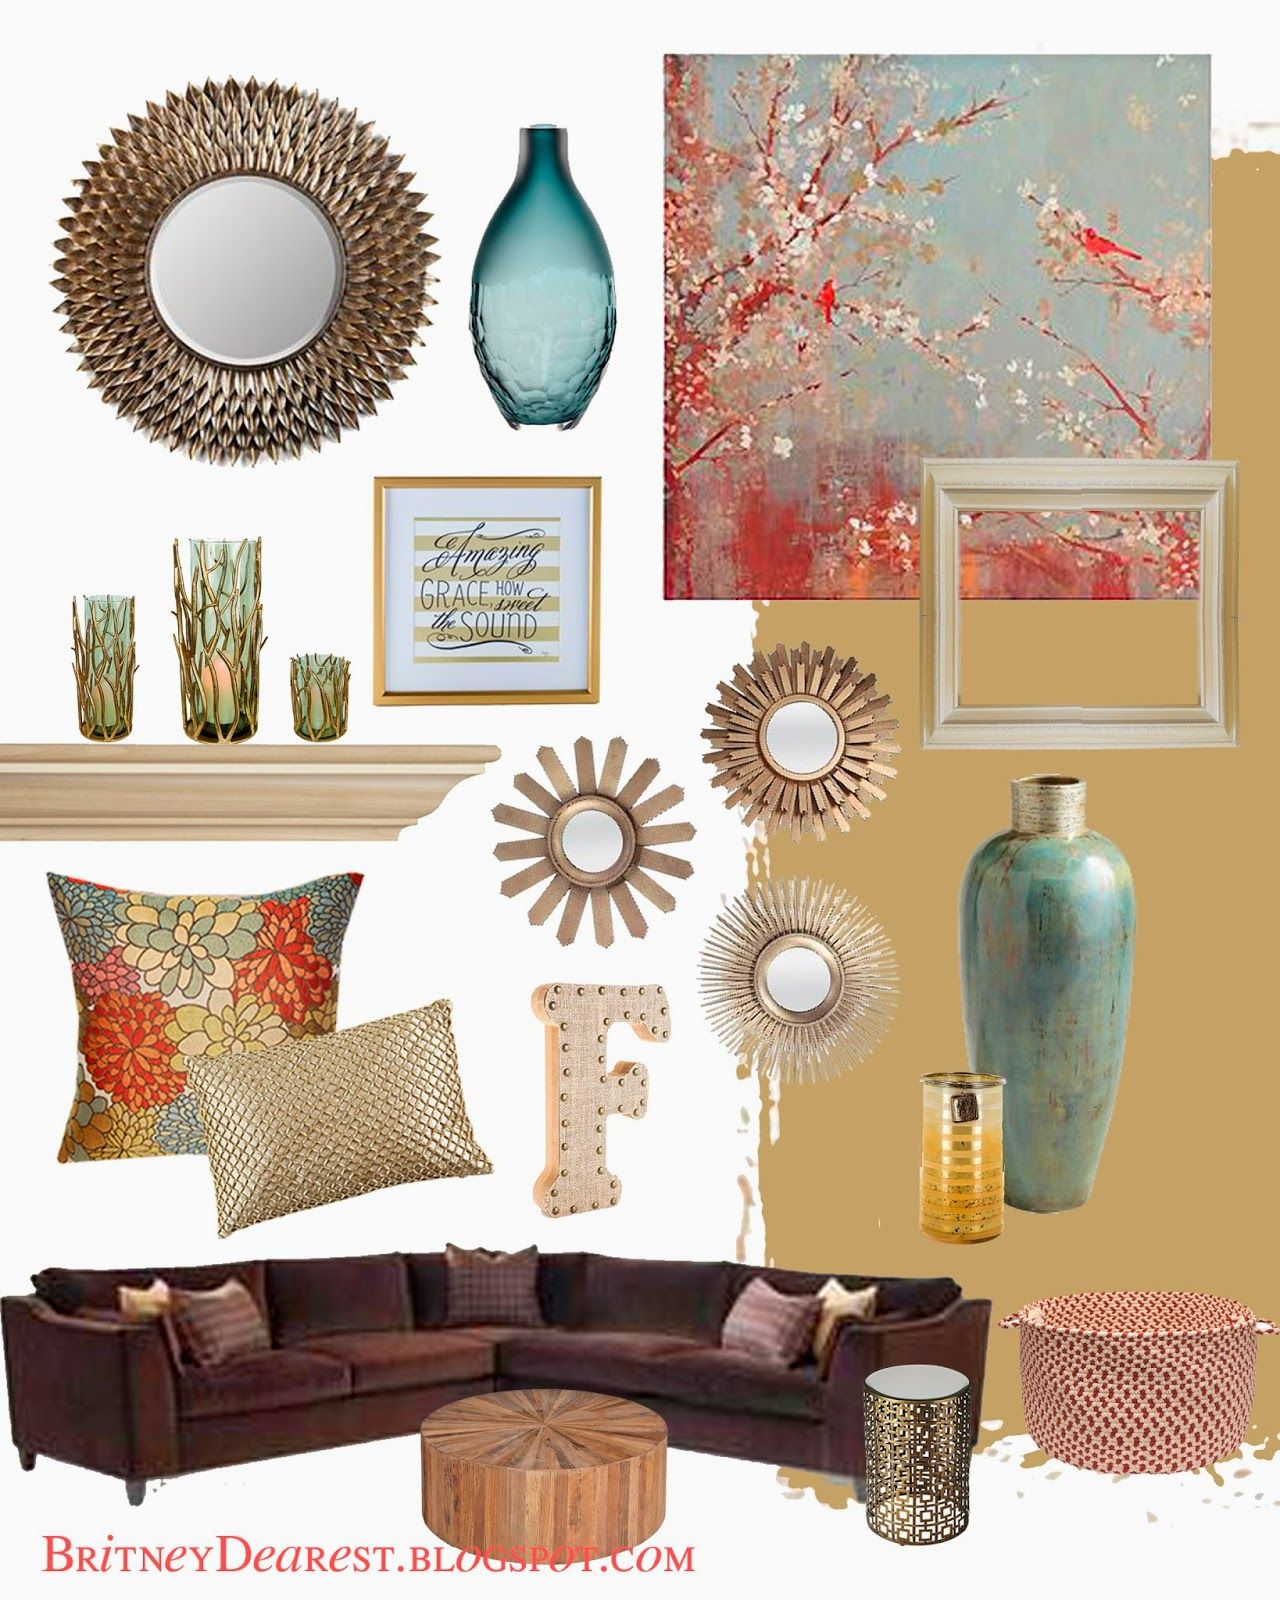 Living Room Style Ideas Home Interior Mood Board Home Decor Tan Red Blue Teal Coral